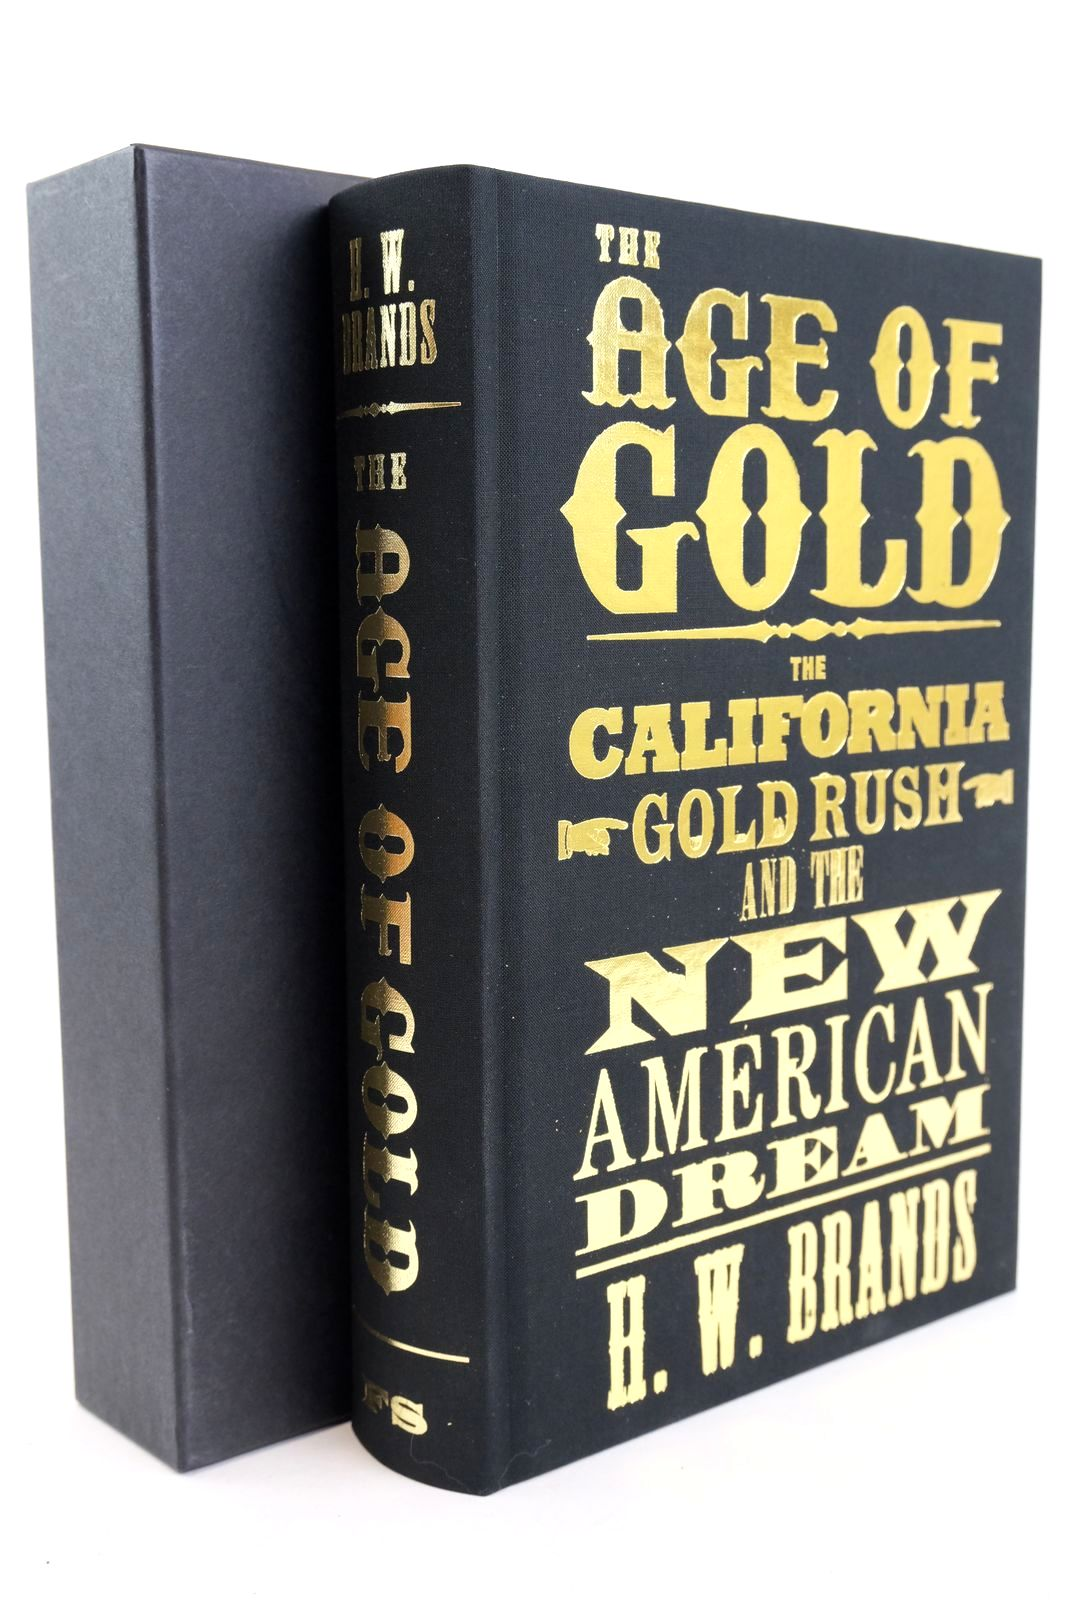 Photo of THE AGE OF GOLD written by Brands, H.W. published by Folio Society (STOCK CODE: 1318895)  for sale by Stella & Rose's Books